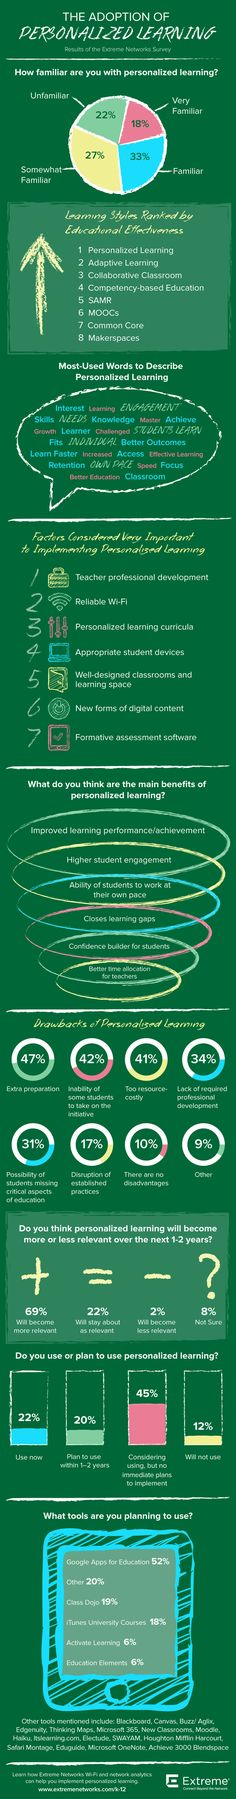 The Adoption of Personalized Learning Infographic - http://elearninginfographics.com/adoption-personalized-learning-infographic/